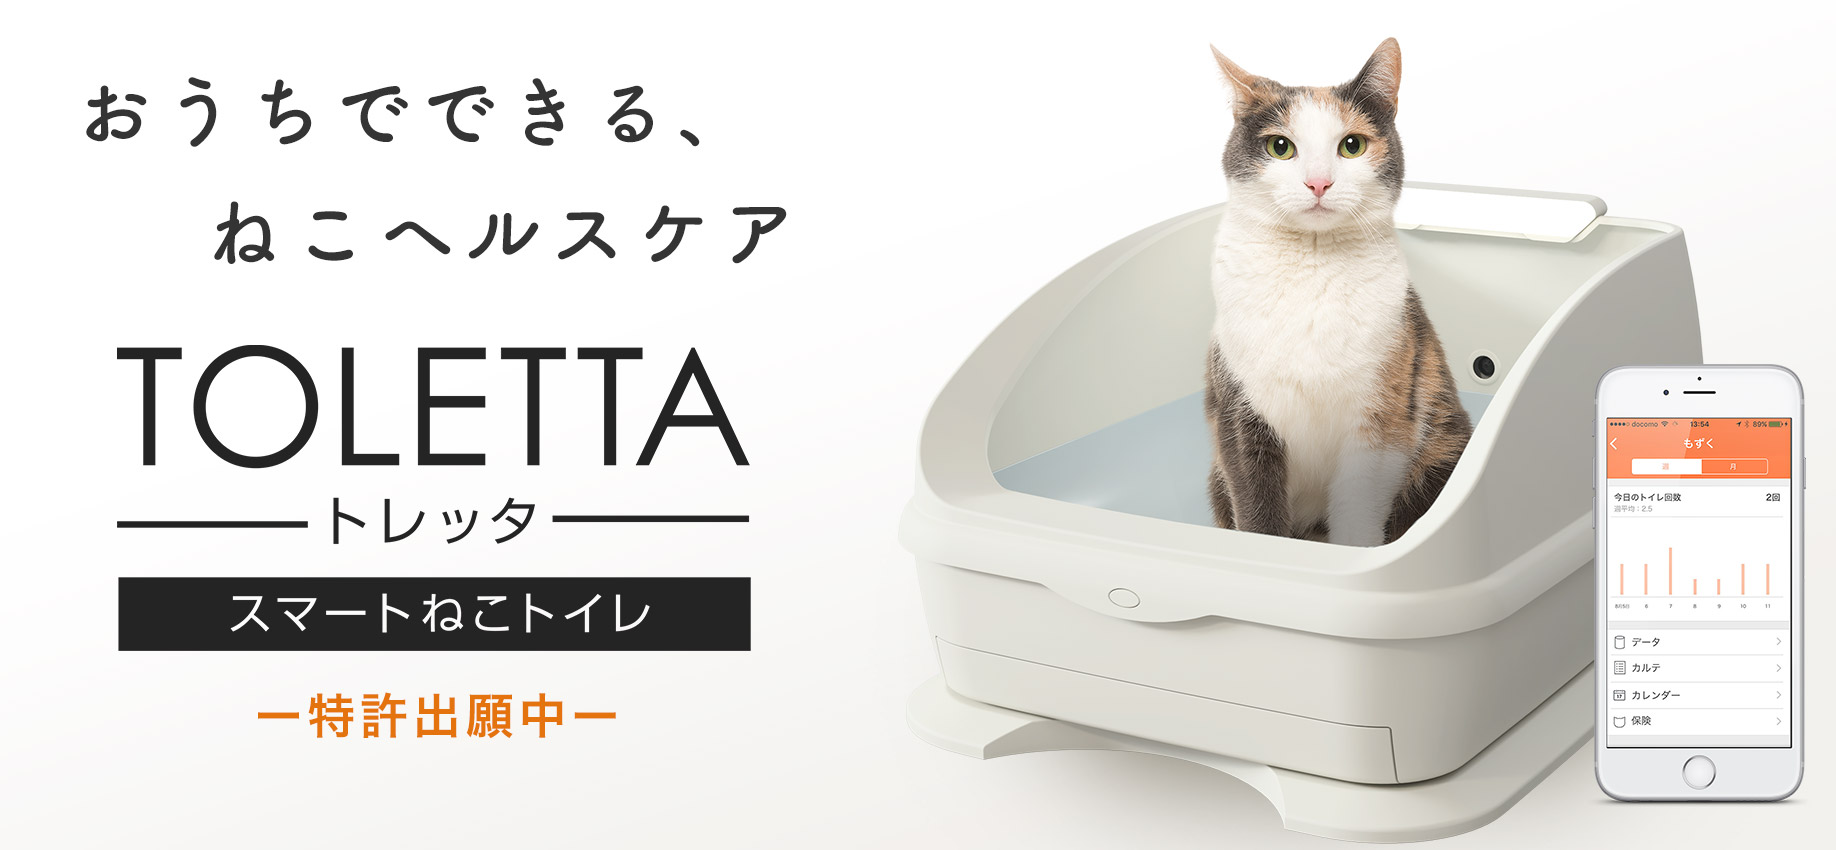 https://toletta.jp/wp-content/themes/toletta/assets/img/top/firstview_image_2@2x.jpg